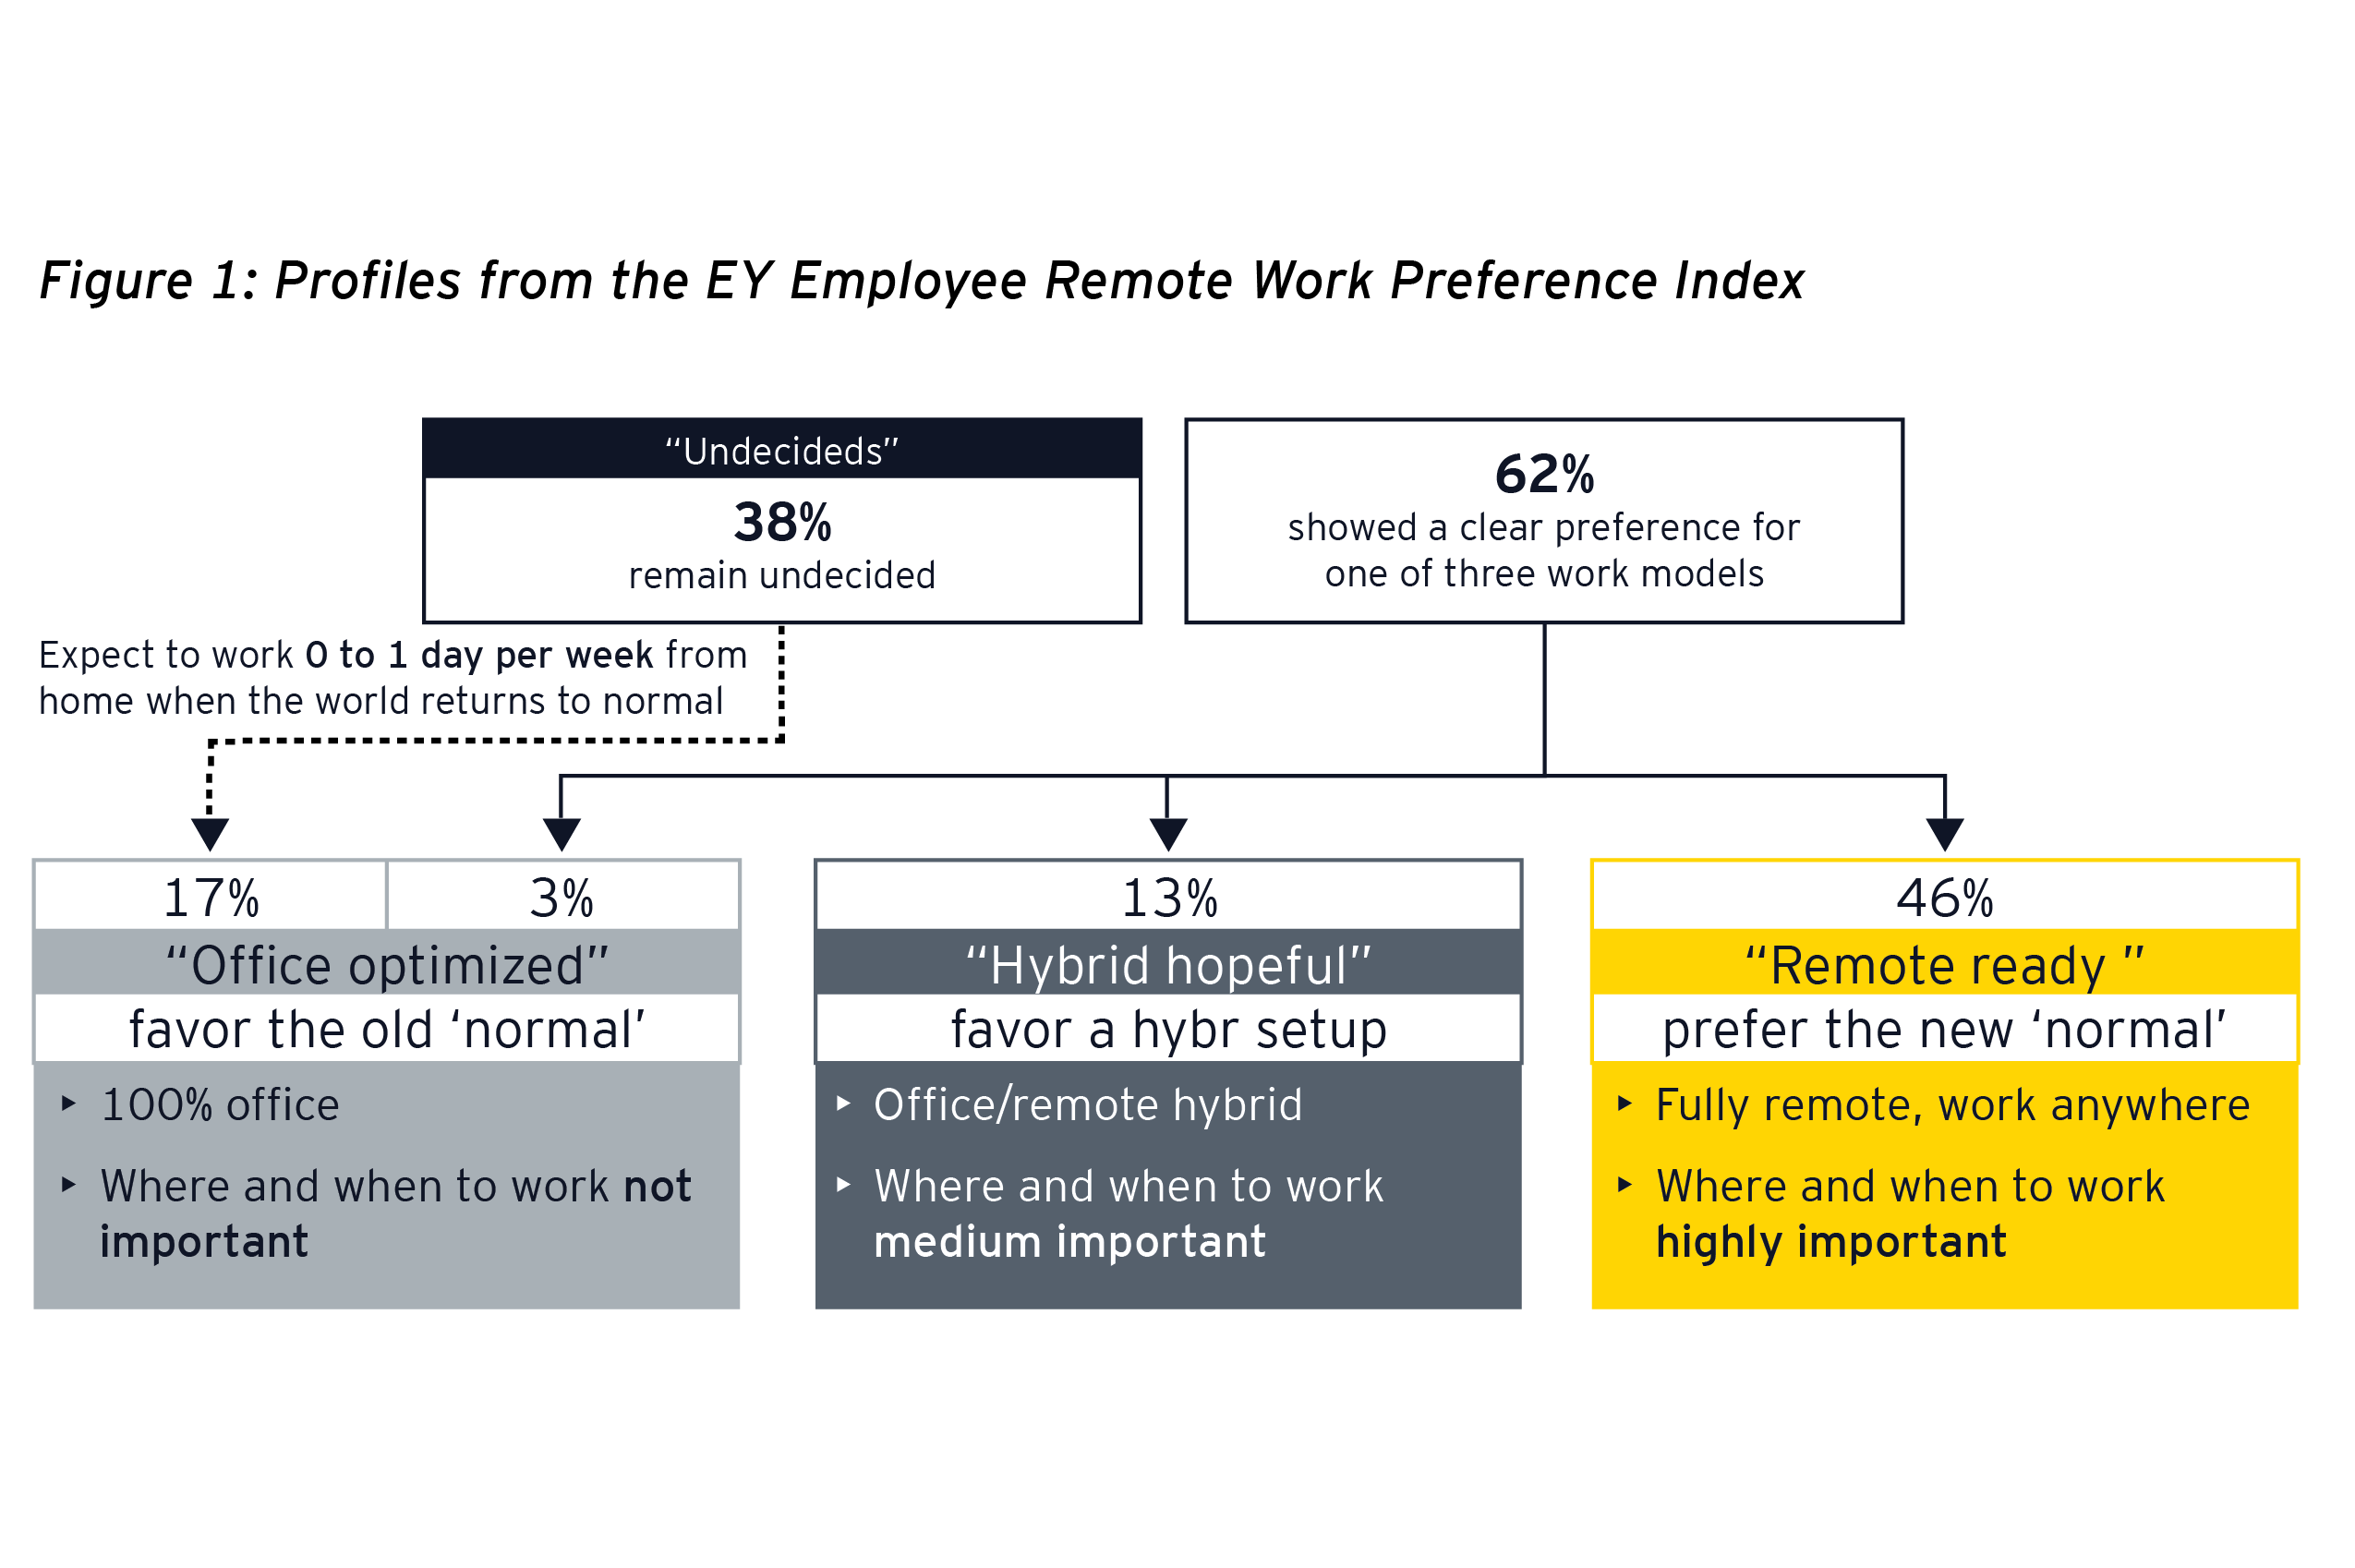 EY - Figure 1: Profiles from the EY Employee Remote Work Preference Index